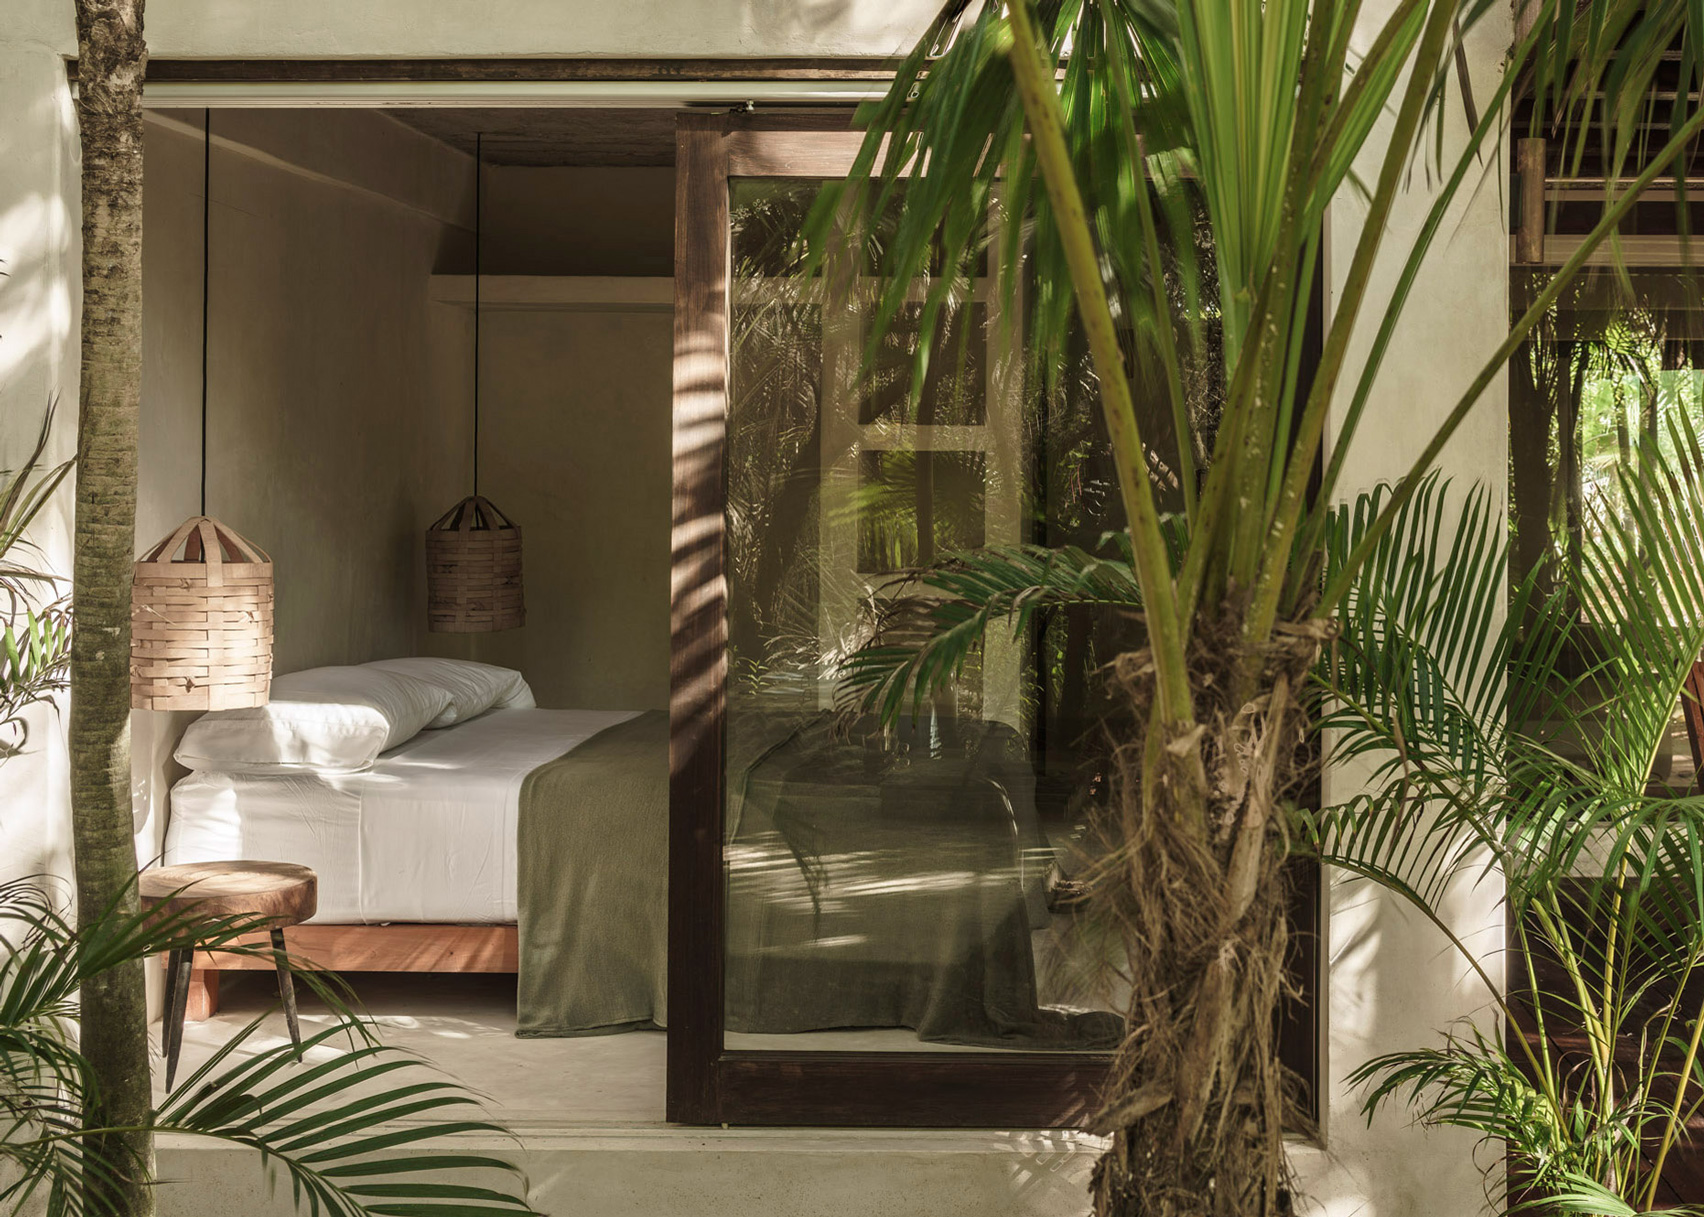 Tulum Treehouse, Mexico, by CO-LAB Design Office